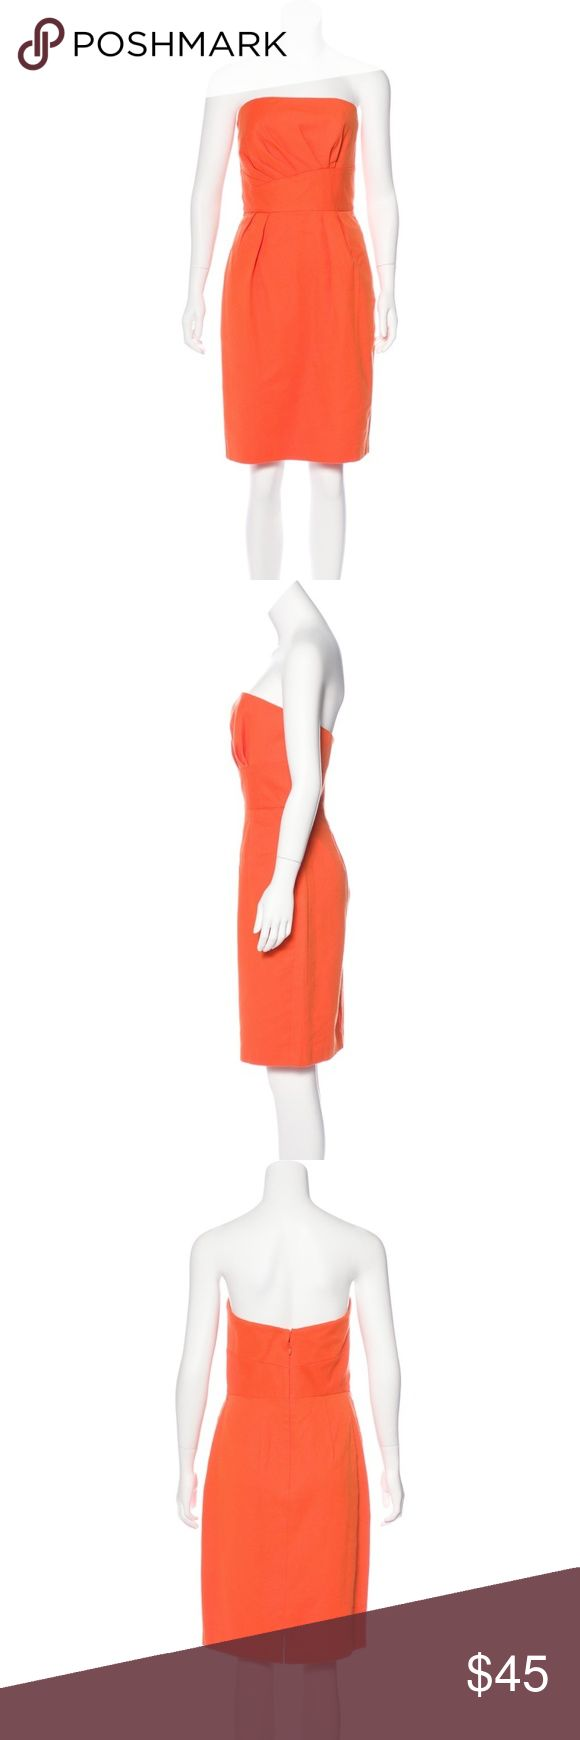 "Kay Unger Strapless Orange Mini Dress Size 8 Kay Unger Orange Strapless Mini Dress Brand new with tags! Retail $290  - Asymmetrical Square Neck - Pleated accents at bodice - Dual seam pockets at hip - Textured Pattern - Concealed zip closure at center back - Purchased at Neiman Marcus - Size: 8  Measurements approximate Bust: 32"" Waist: 26"" Hip: 40"" Length: 32"" Kay Unger Dresses Strapless"